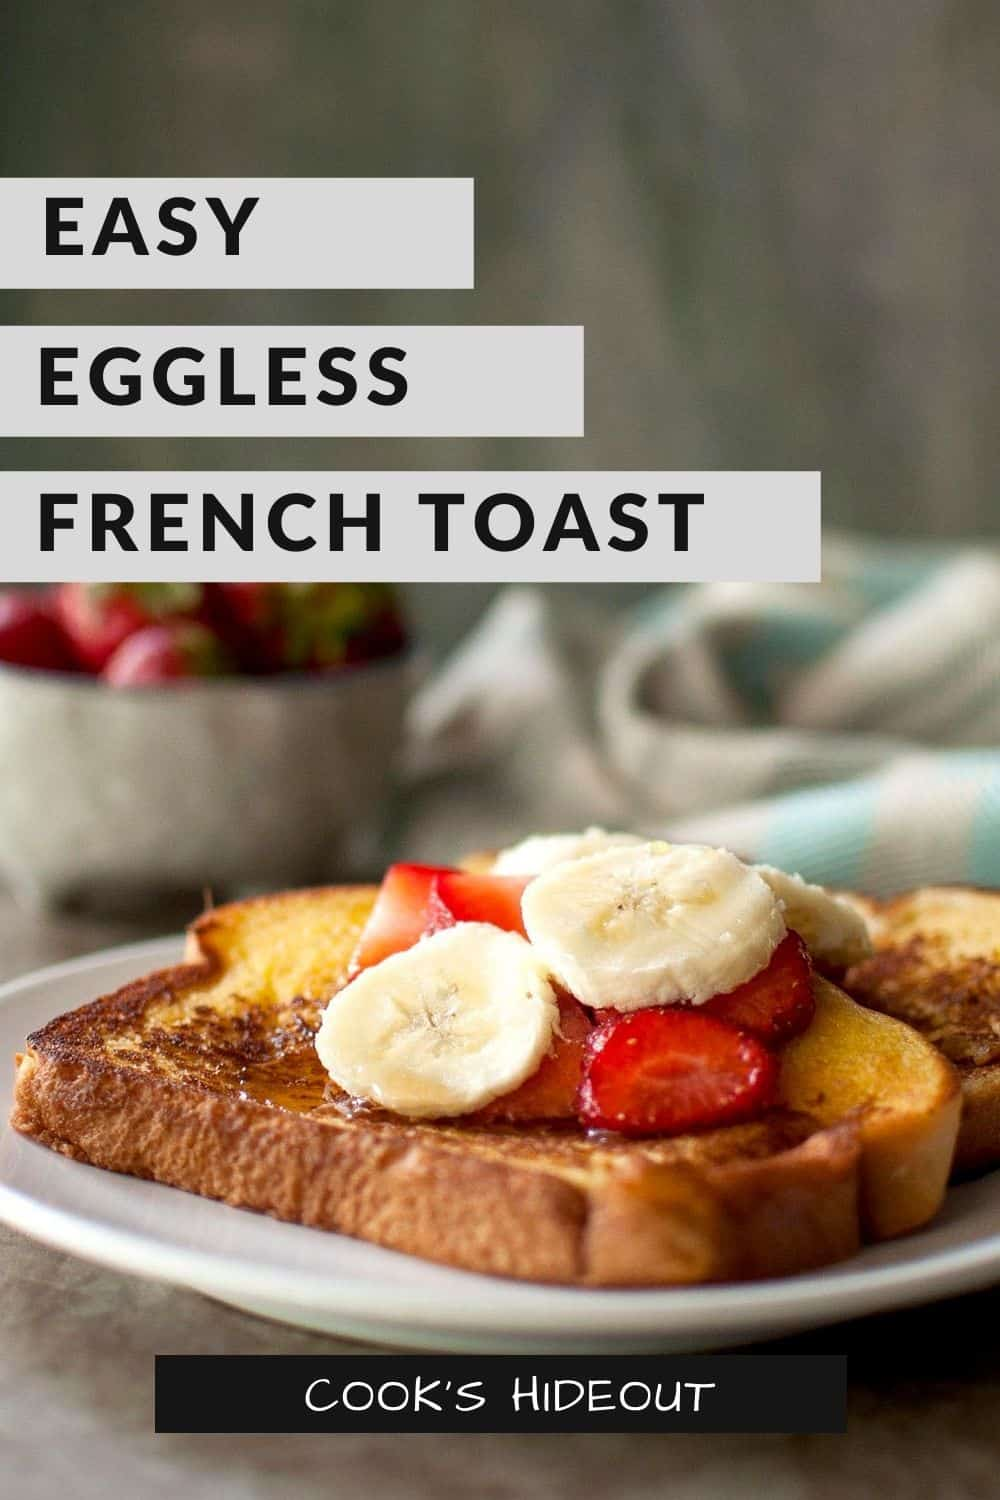 White plate with eggless french toast